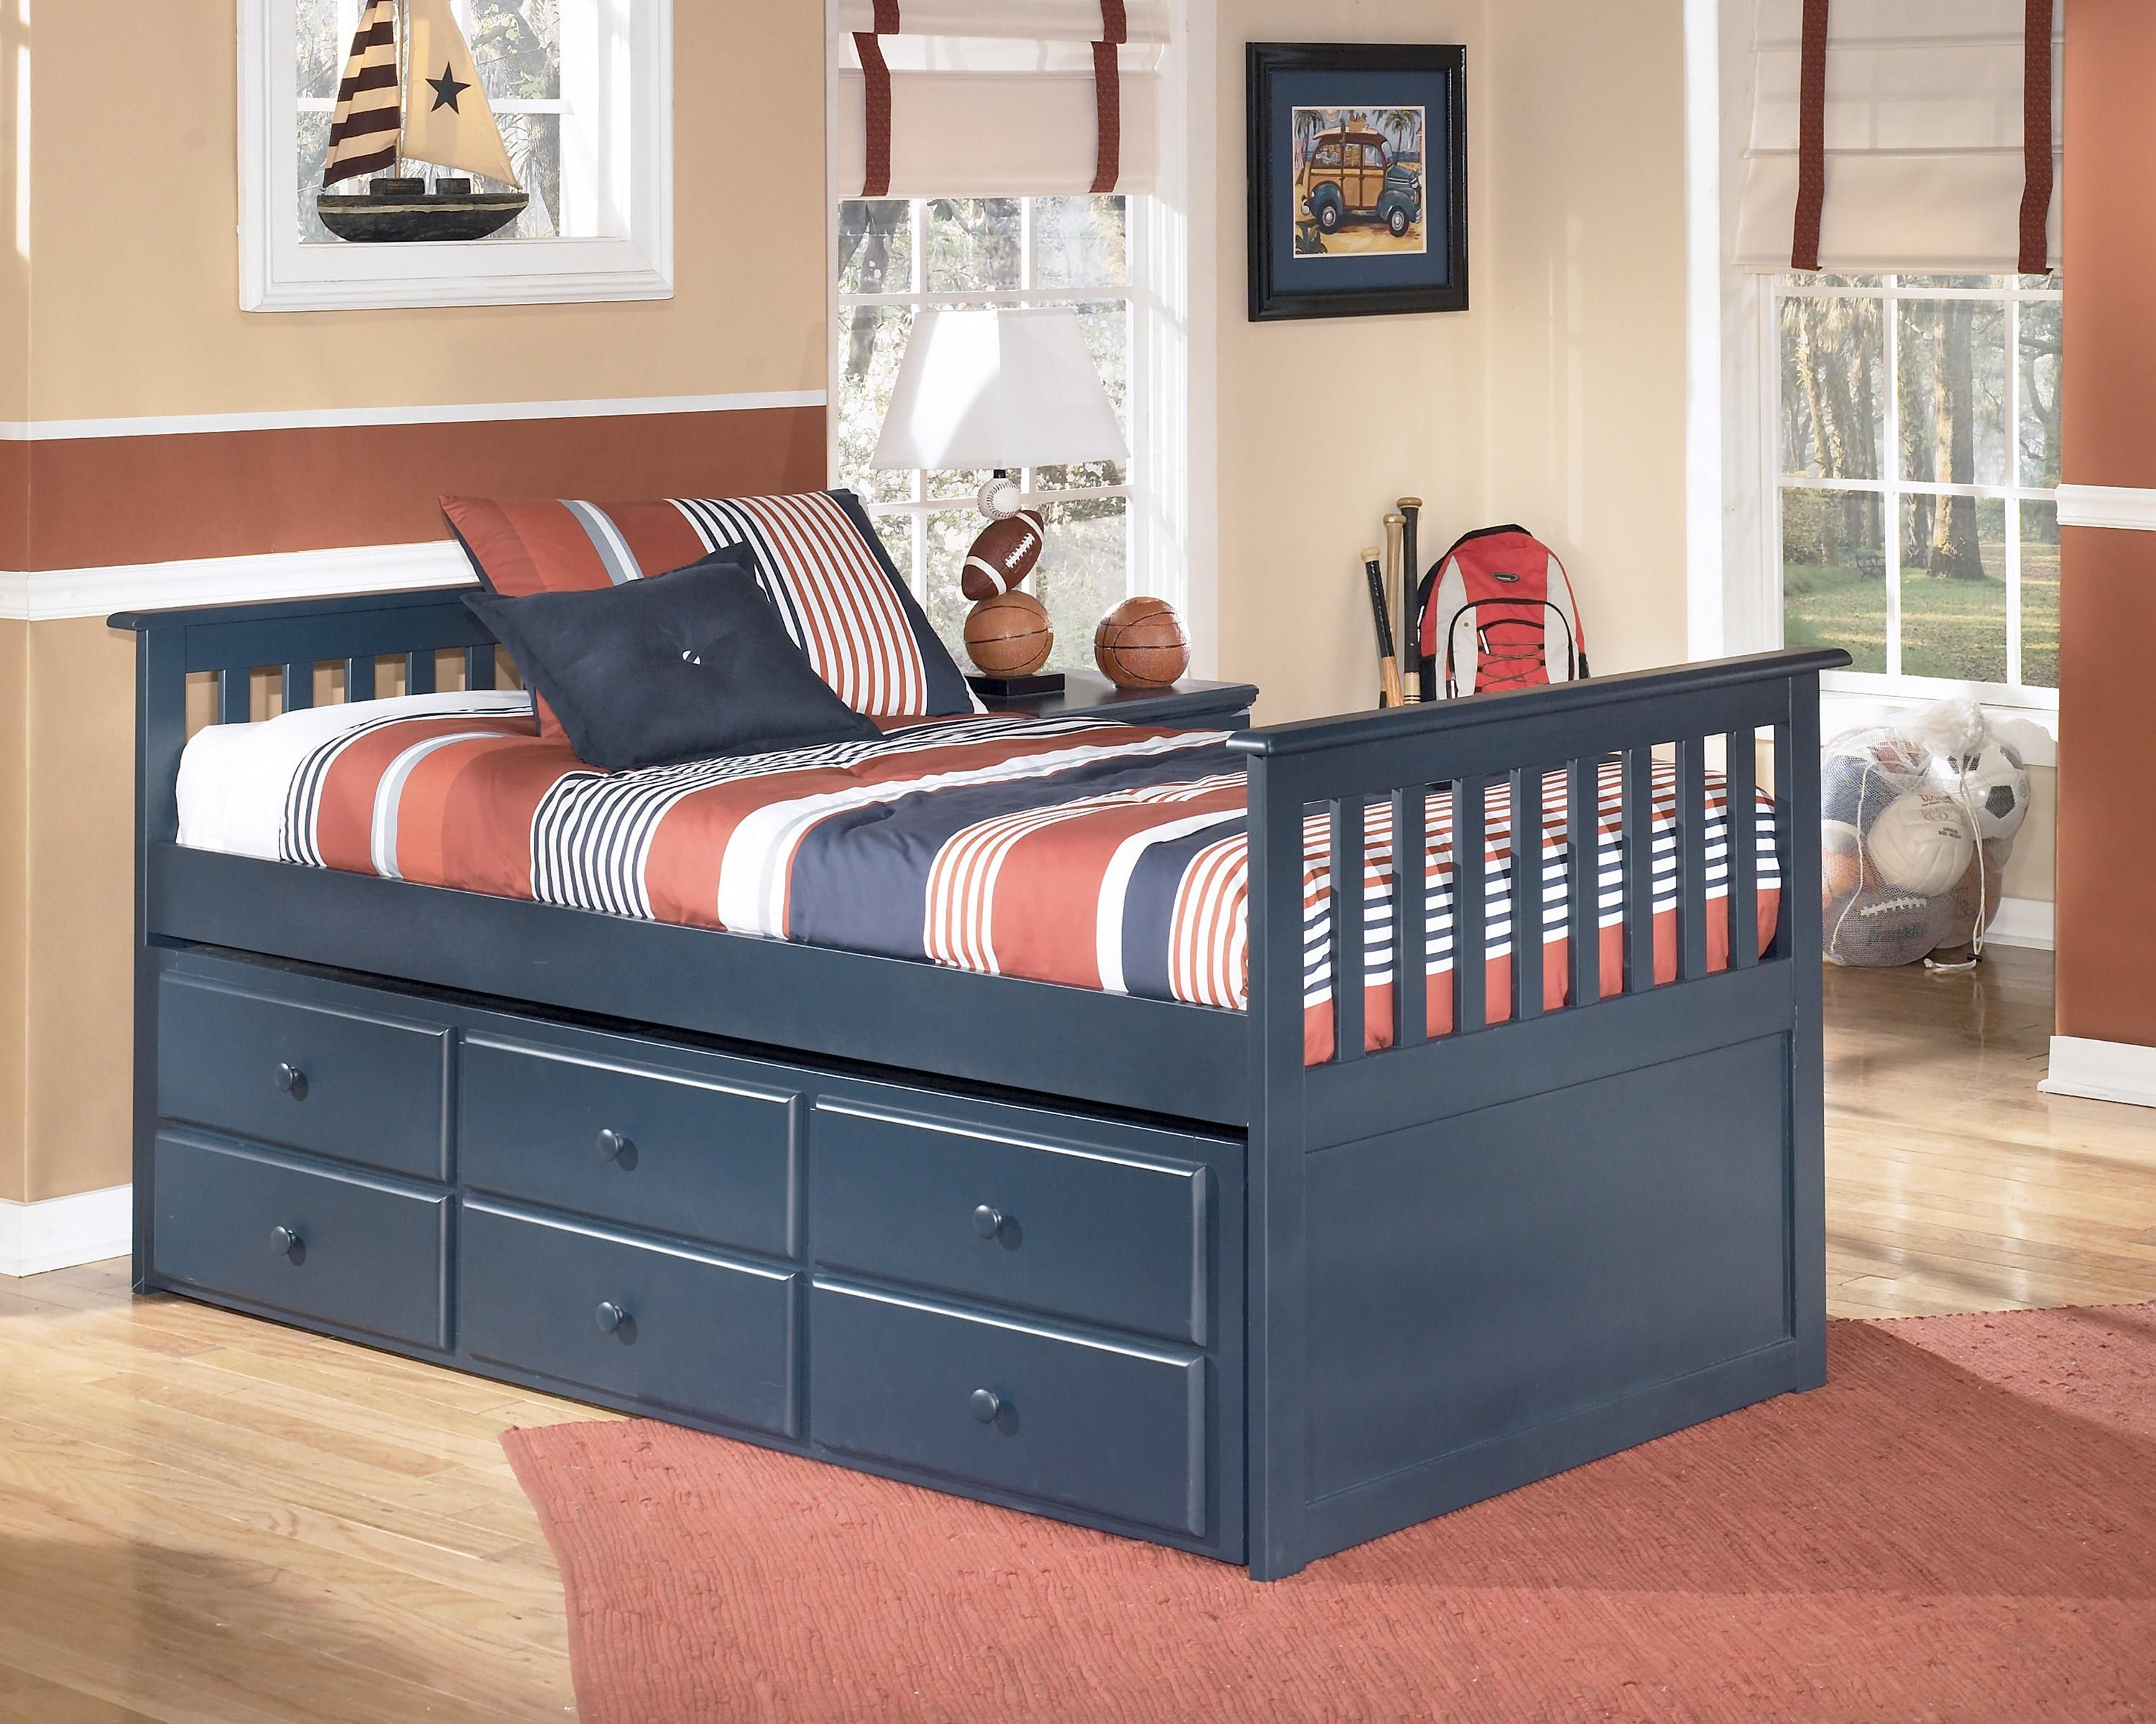 Leo Twin Bed With Trundle By Signature Design By Ashley Furniture. Kidu0027s  Furniture For A